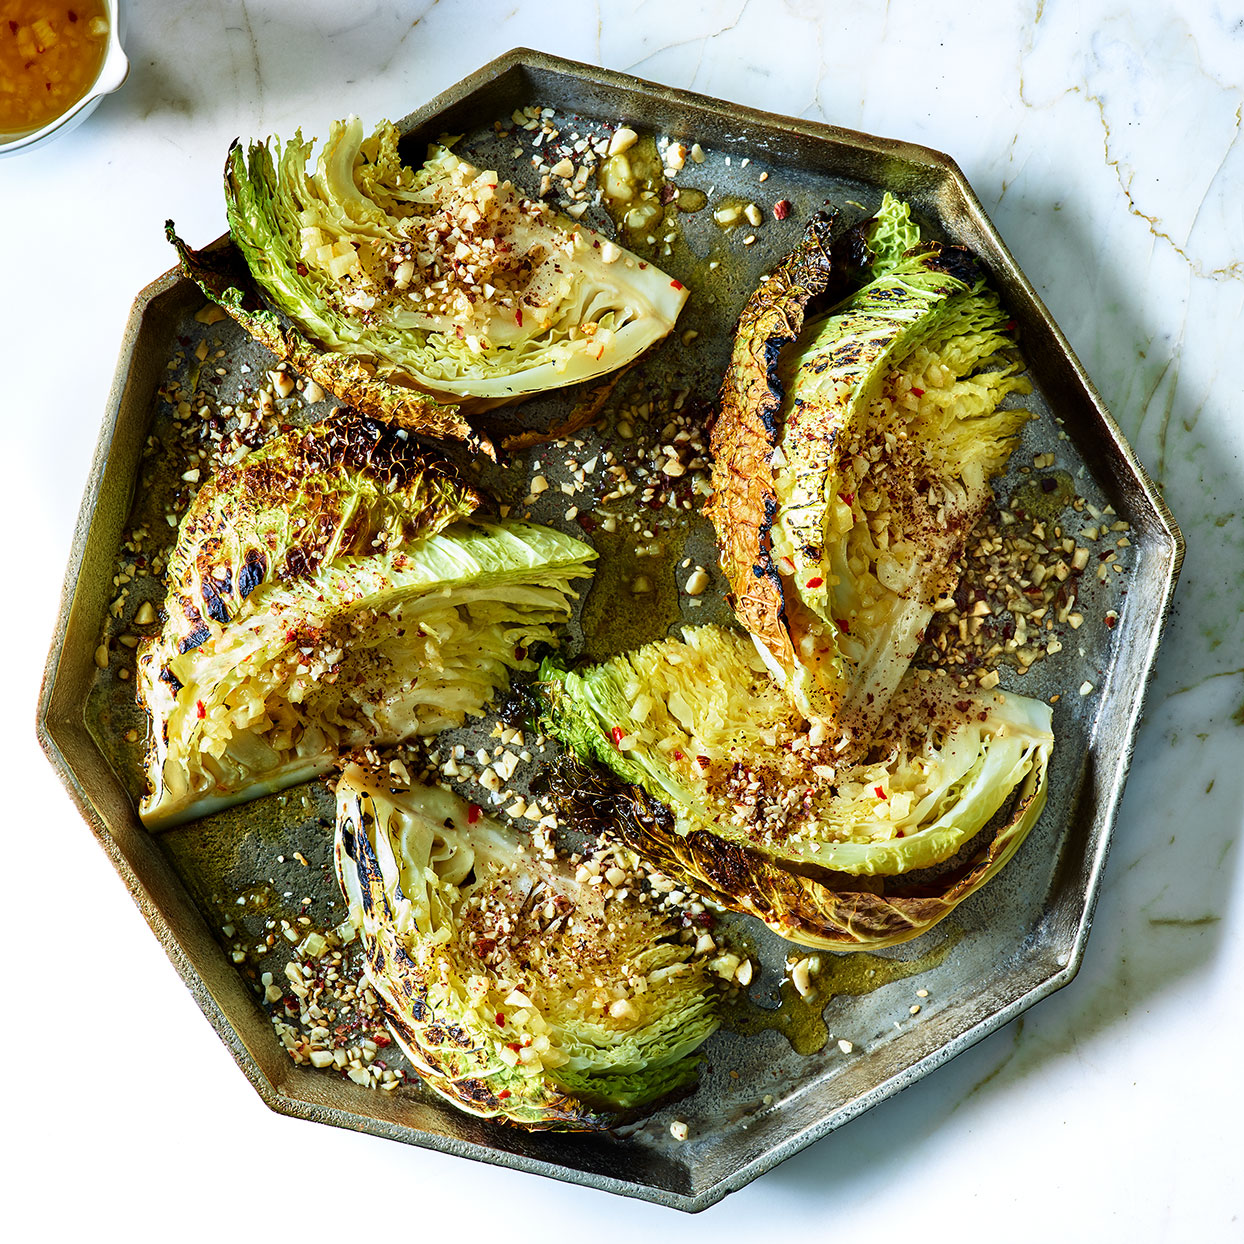 Easy Savoy cabbage recipes can be far and few between, especially ones that are as delicious as this whole roasted cabbage. The outer cabbage leaves blacken during the long cooking time, but when removed they reveal a meltingly tender center. Orange blossom water adds delicate aroma to the vinaigrette that's drizzled on top. Serve alongside roast beef or pork, or over mashed potatoes as a main course. Source: EatingWell Magazine, November 2019